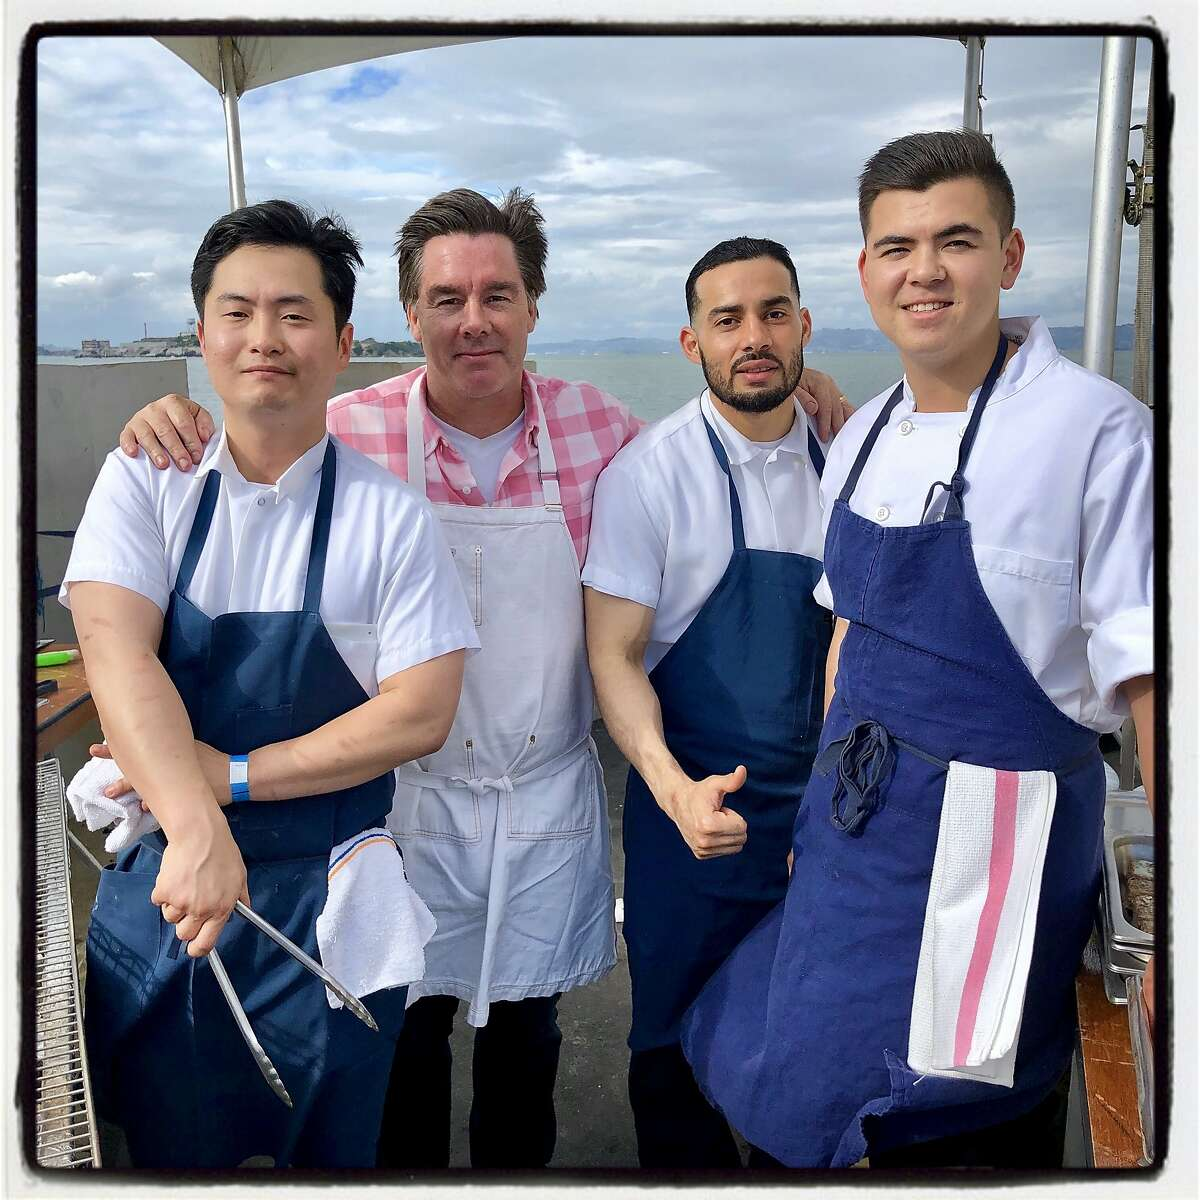 Spruce Restaurant staff (from left) James Lim, chef Mark Sullivan, Jose Alvarez and Brian Thuek at Meals on Wheels. May 19, 2019.